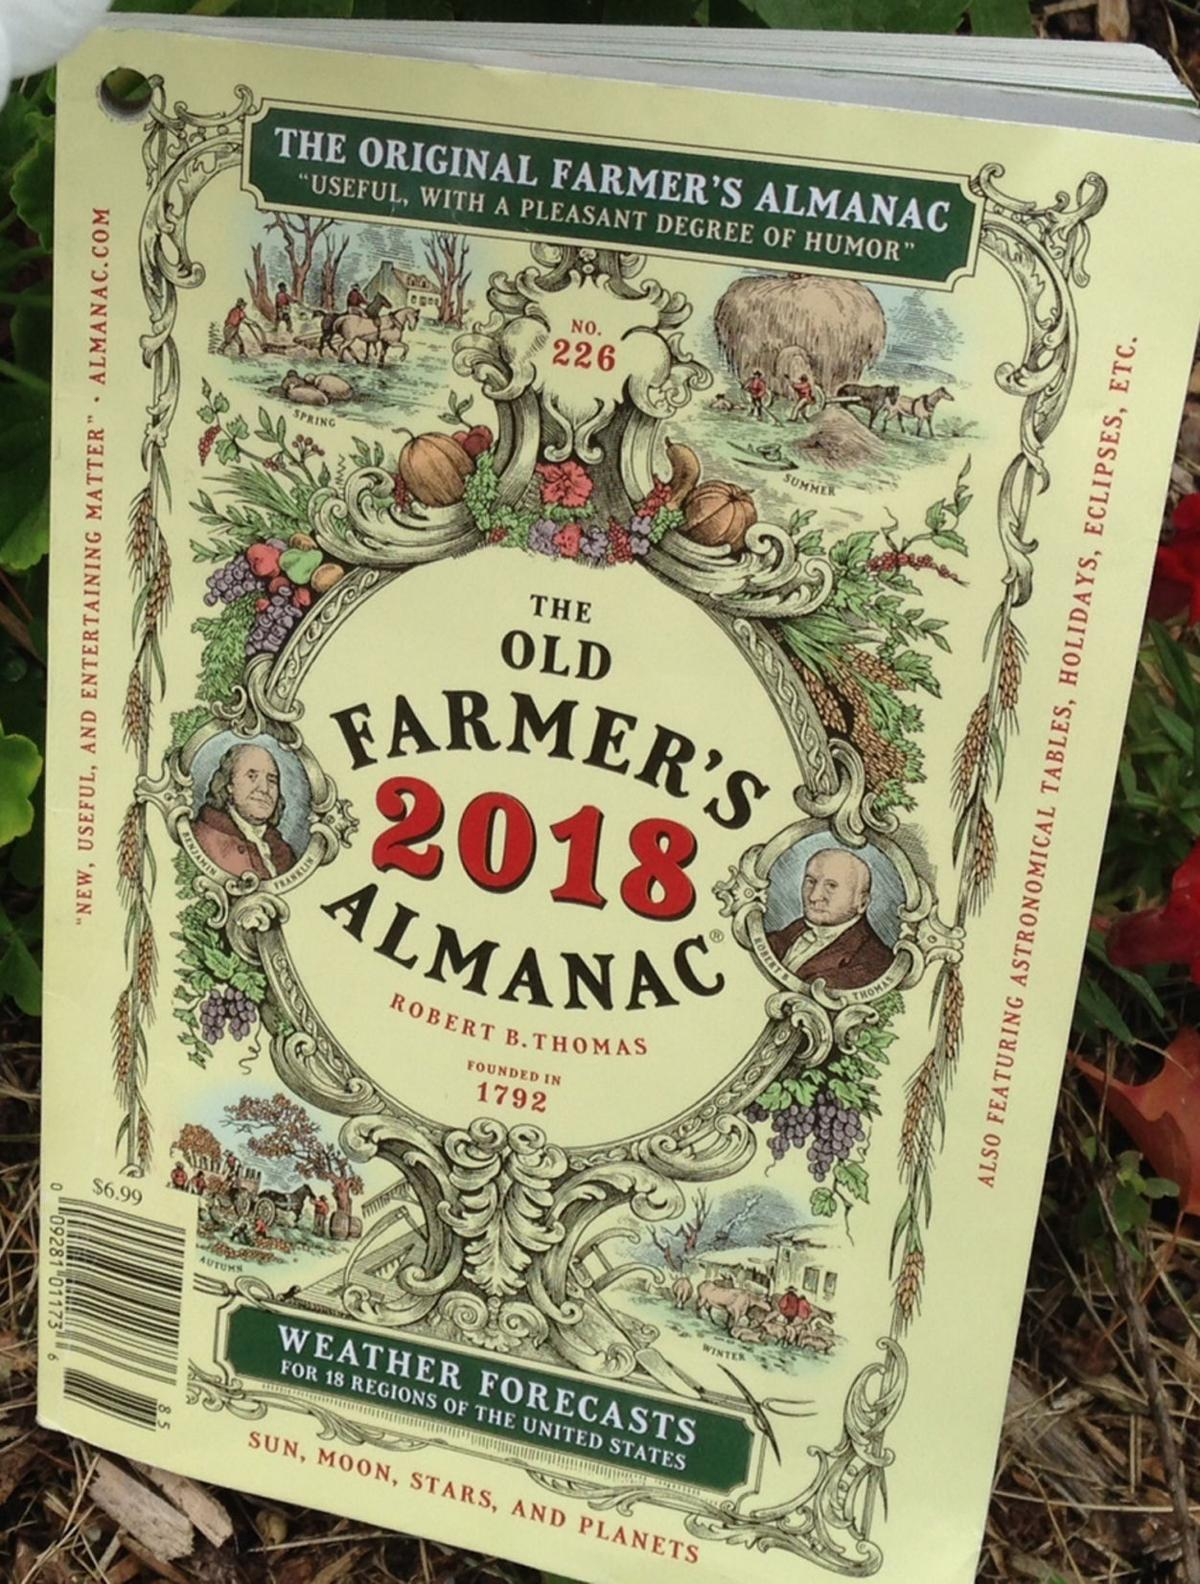 The Old Farmer's Almanac is your trusted source for long range weather forecasts, moon phases, full moon dates and times, gardening tips, sunrise and sunset times, Best Days, tide charts, home remedies, folklore, and more. All from the oldest continuously-published and best-selling farmers' almanac in .